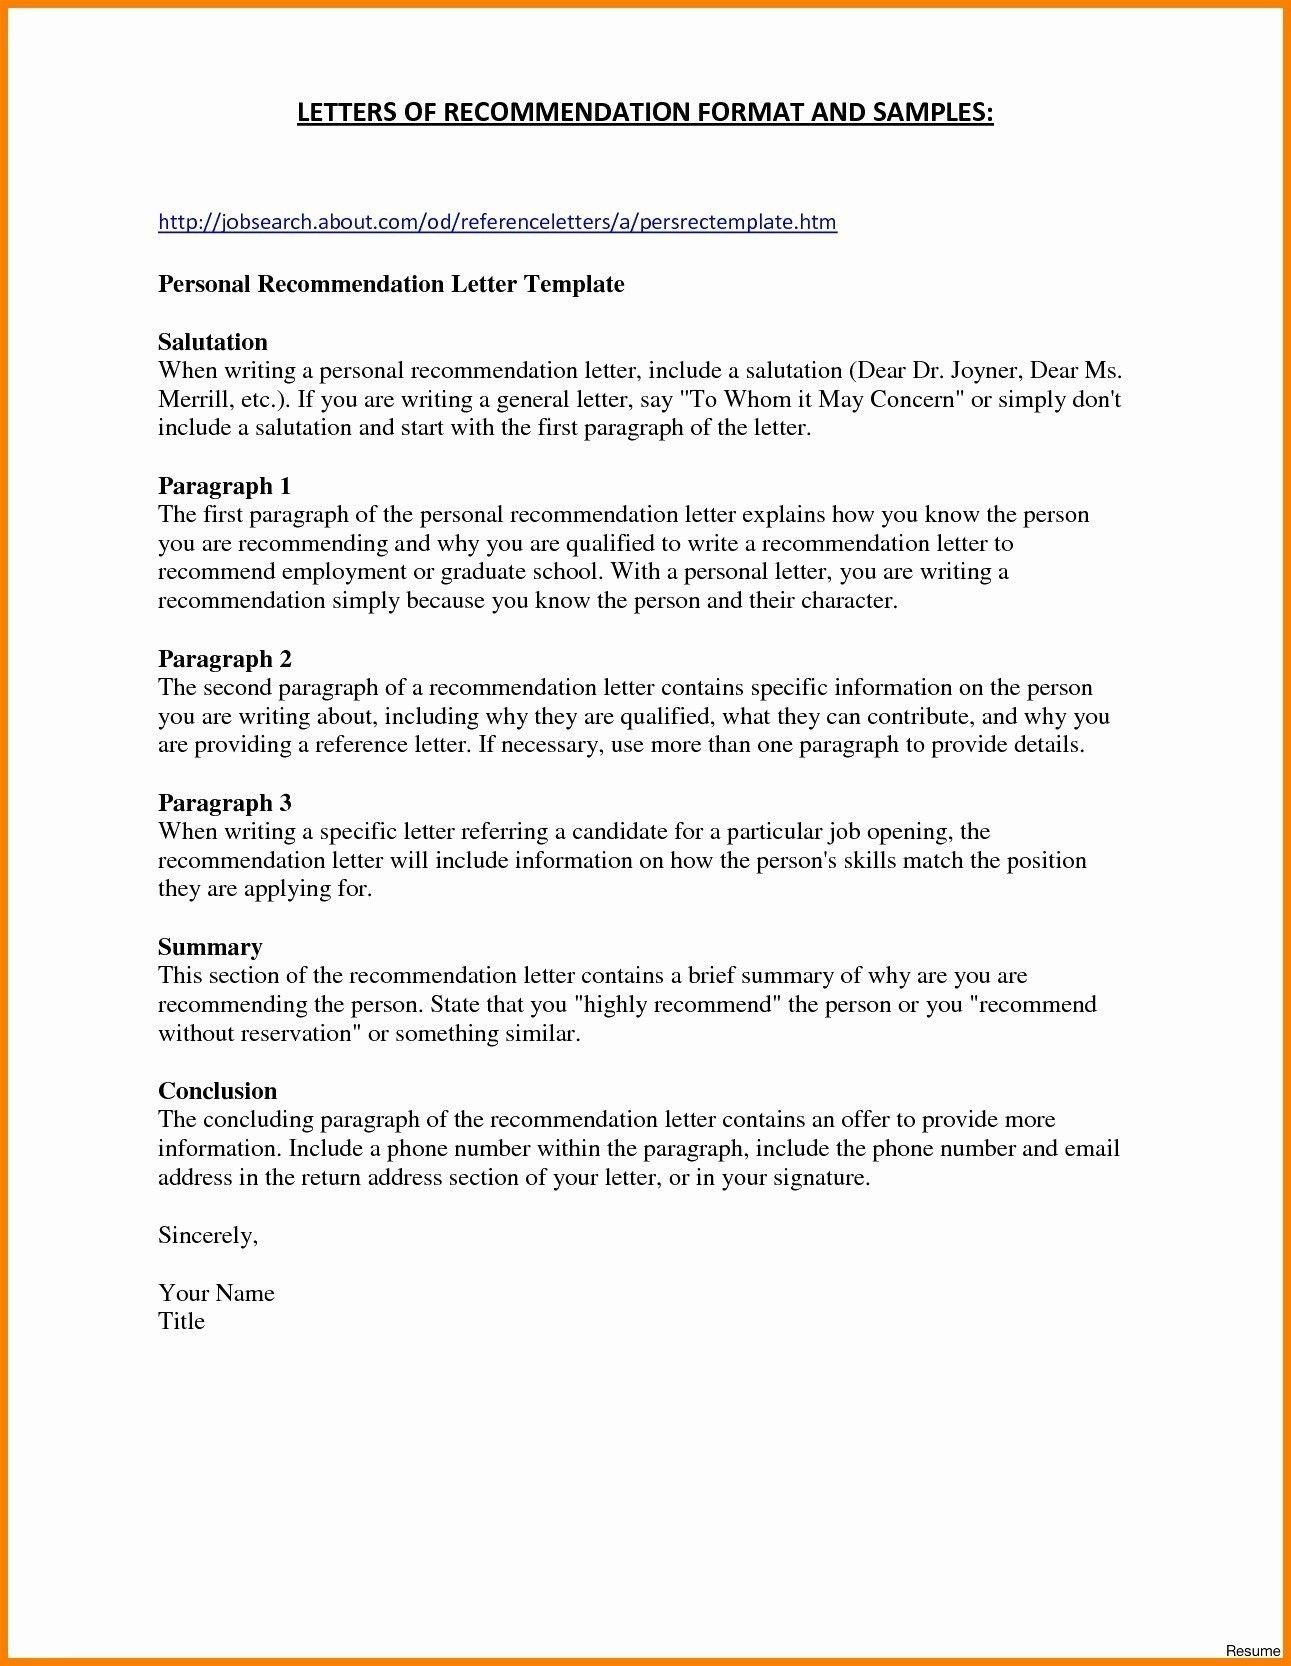 Unique Application Letter Sample For Job Vacancy With Images